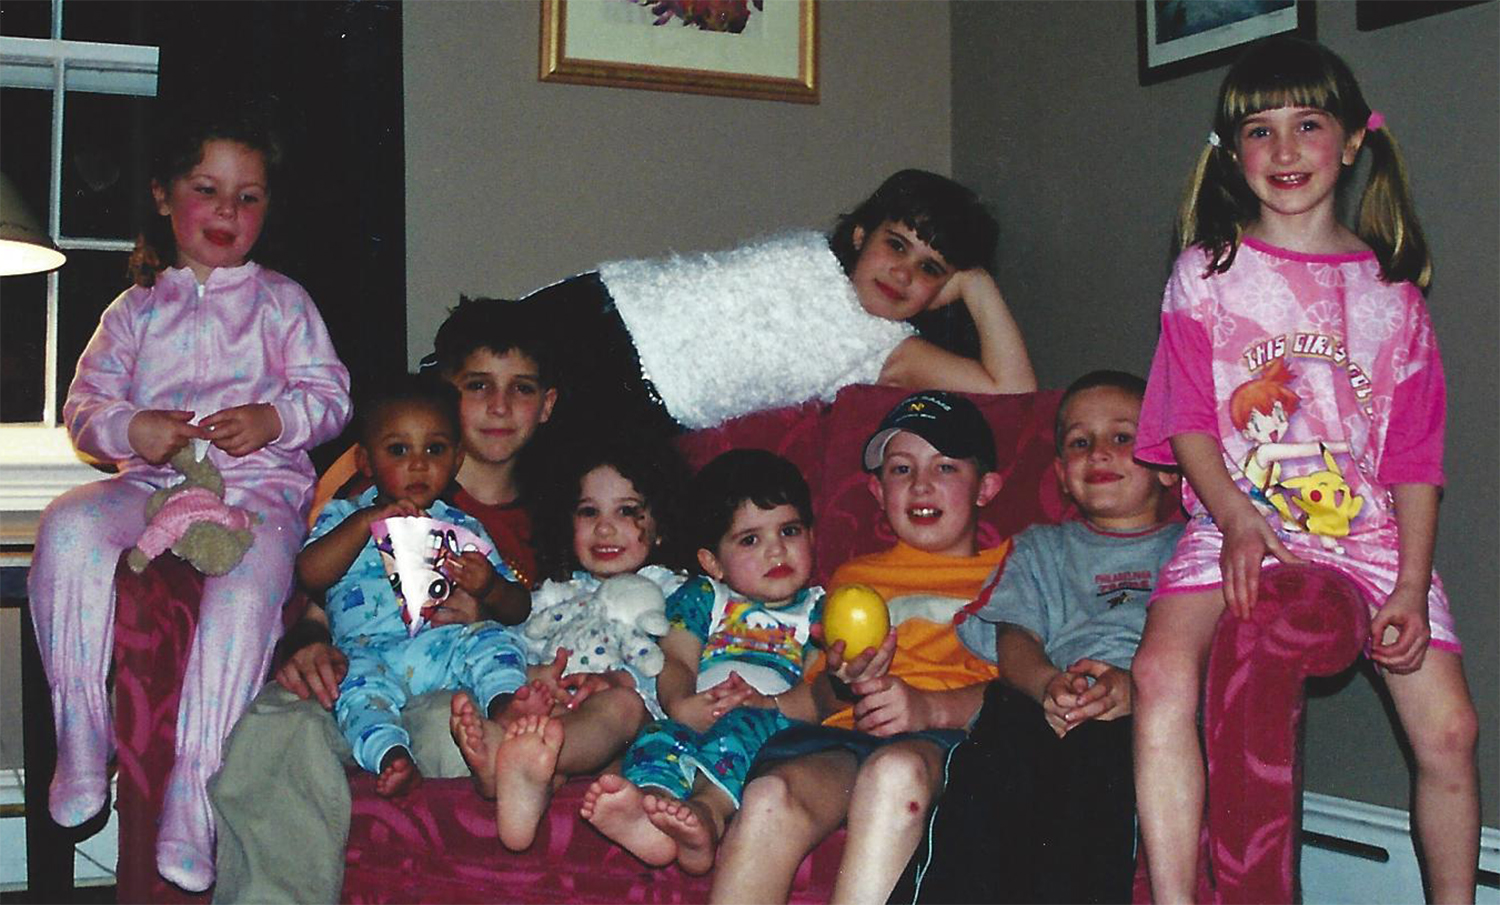 Throwback to The Big Comfy Couch! We would NOT have been able to take this picture if anyone had cheese on their hands. Even though I was one of the youngest, my cousins, and their parents, always looked out for me...